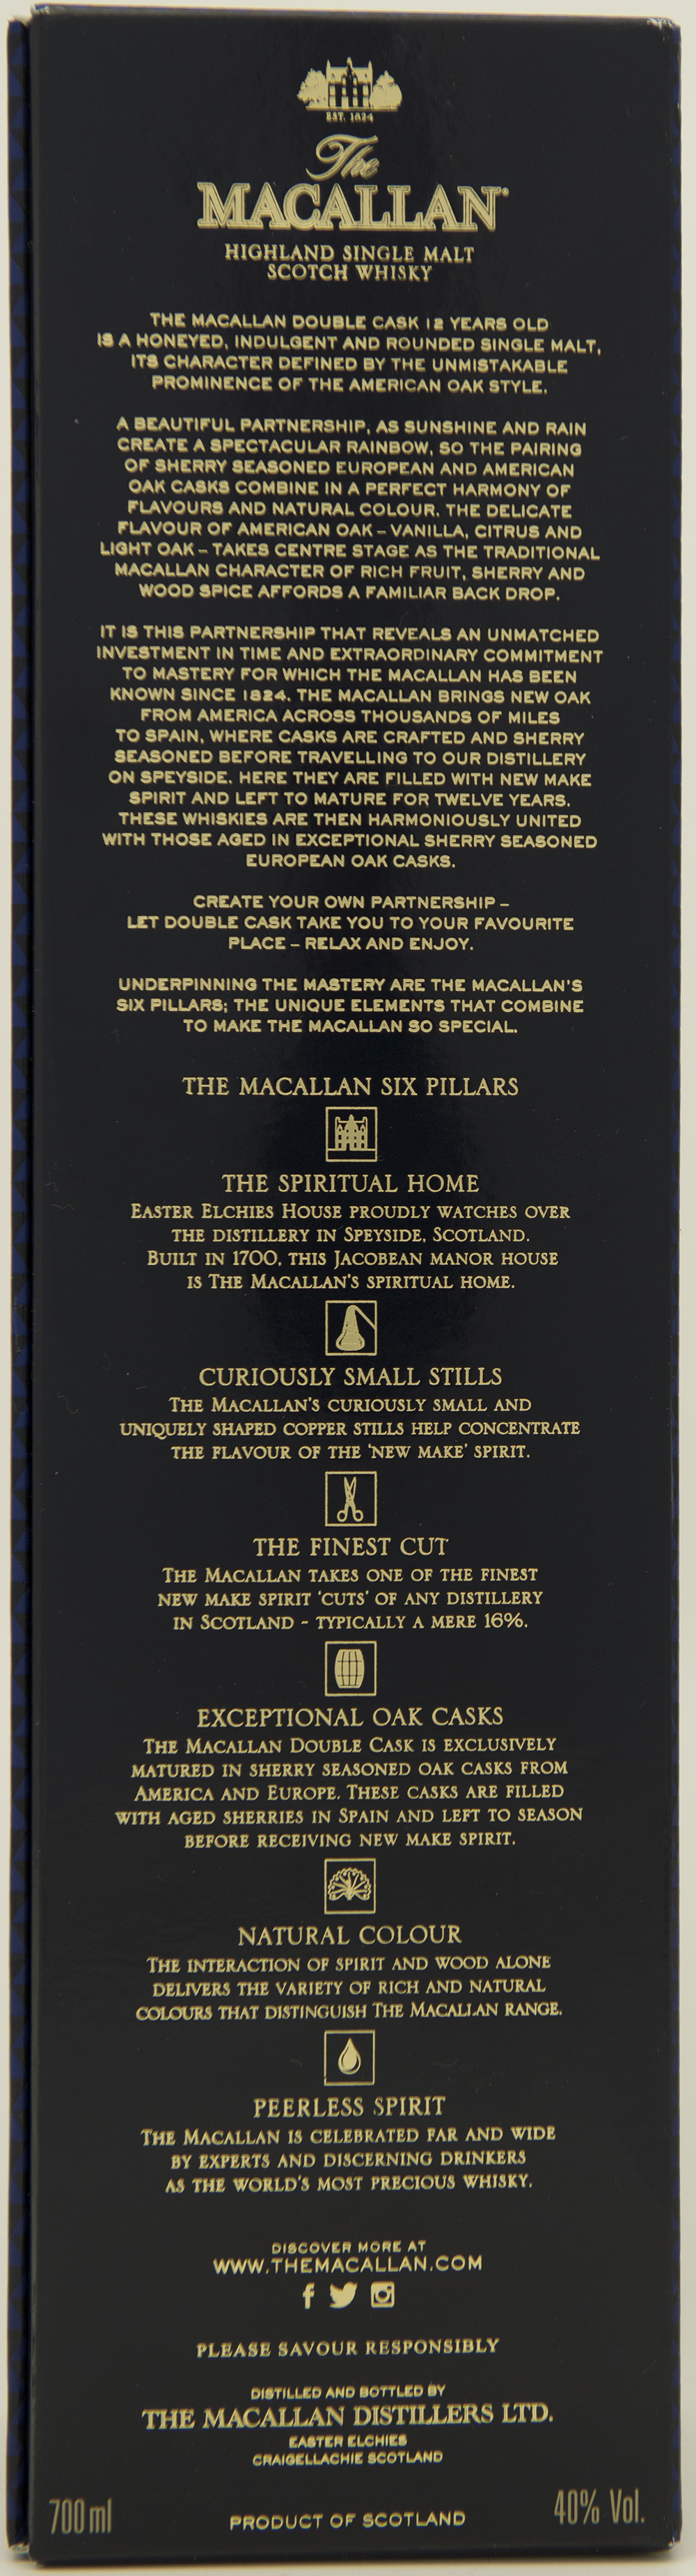 Billede: DSC_3652 - The MacAllan 12 Double Cask - box back.jpg